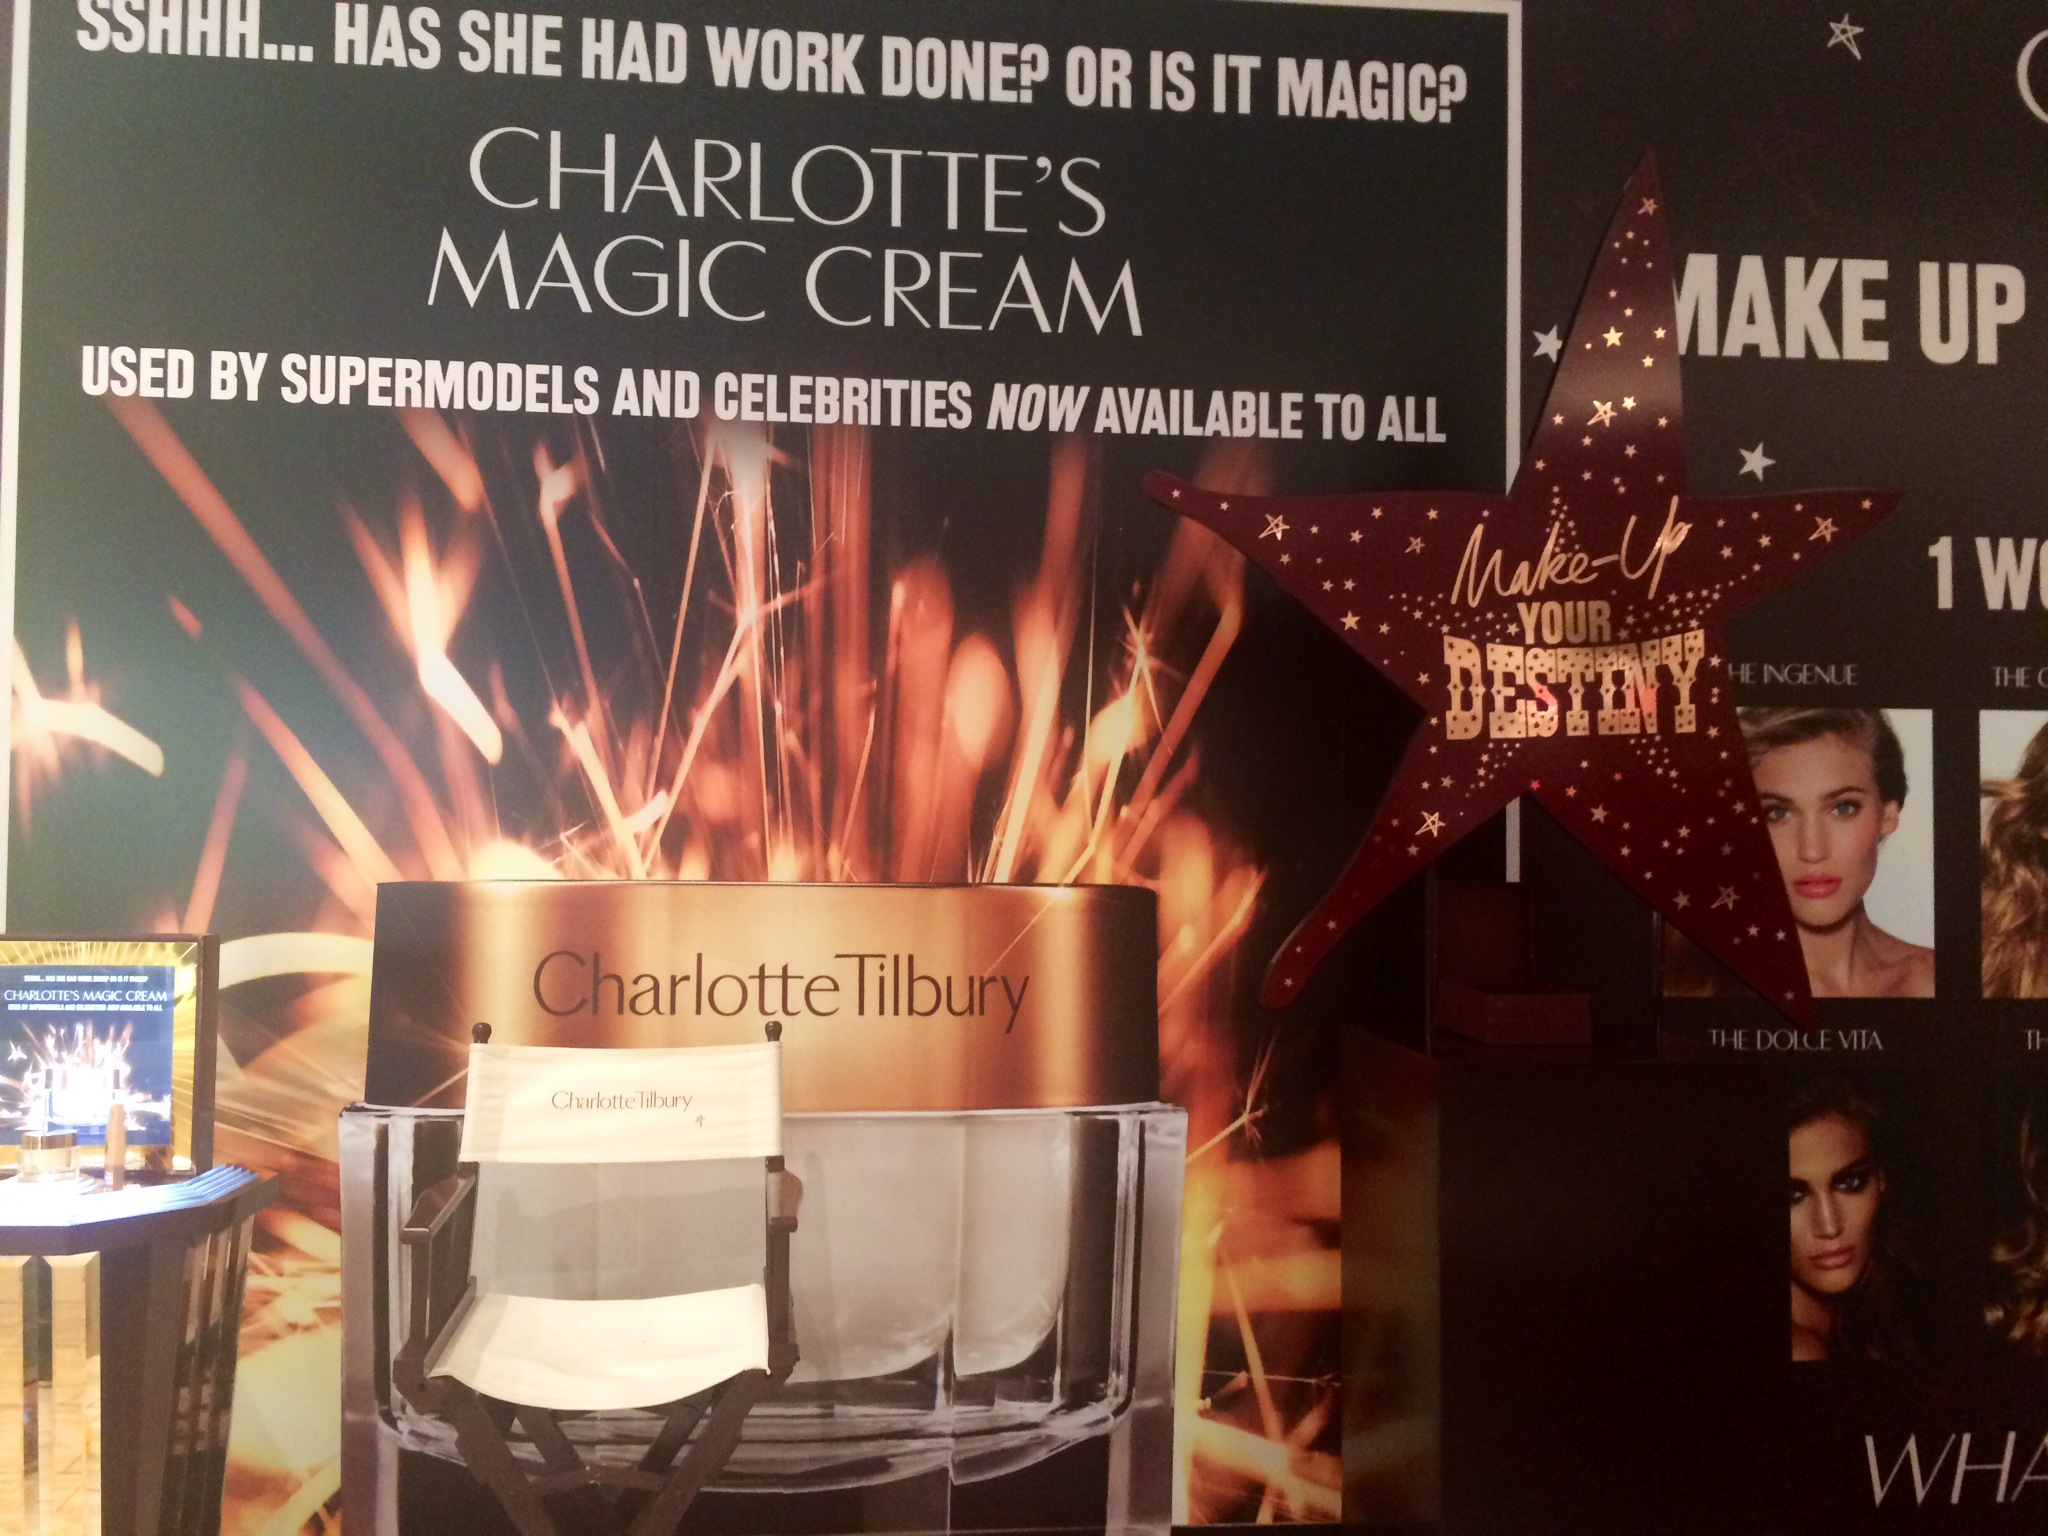 Charlotte Tilbury Magic Cream Dublin